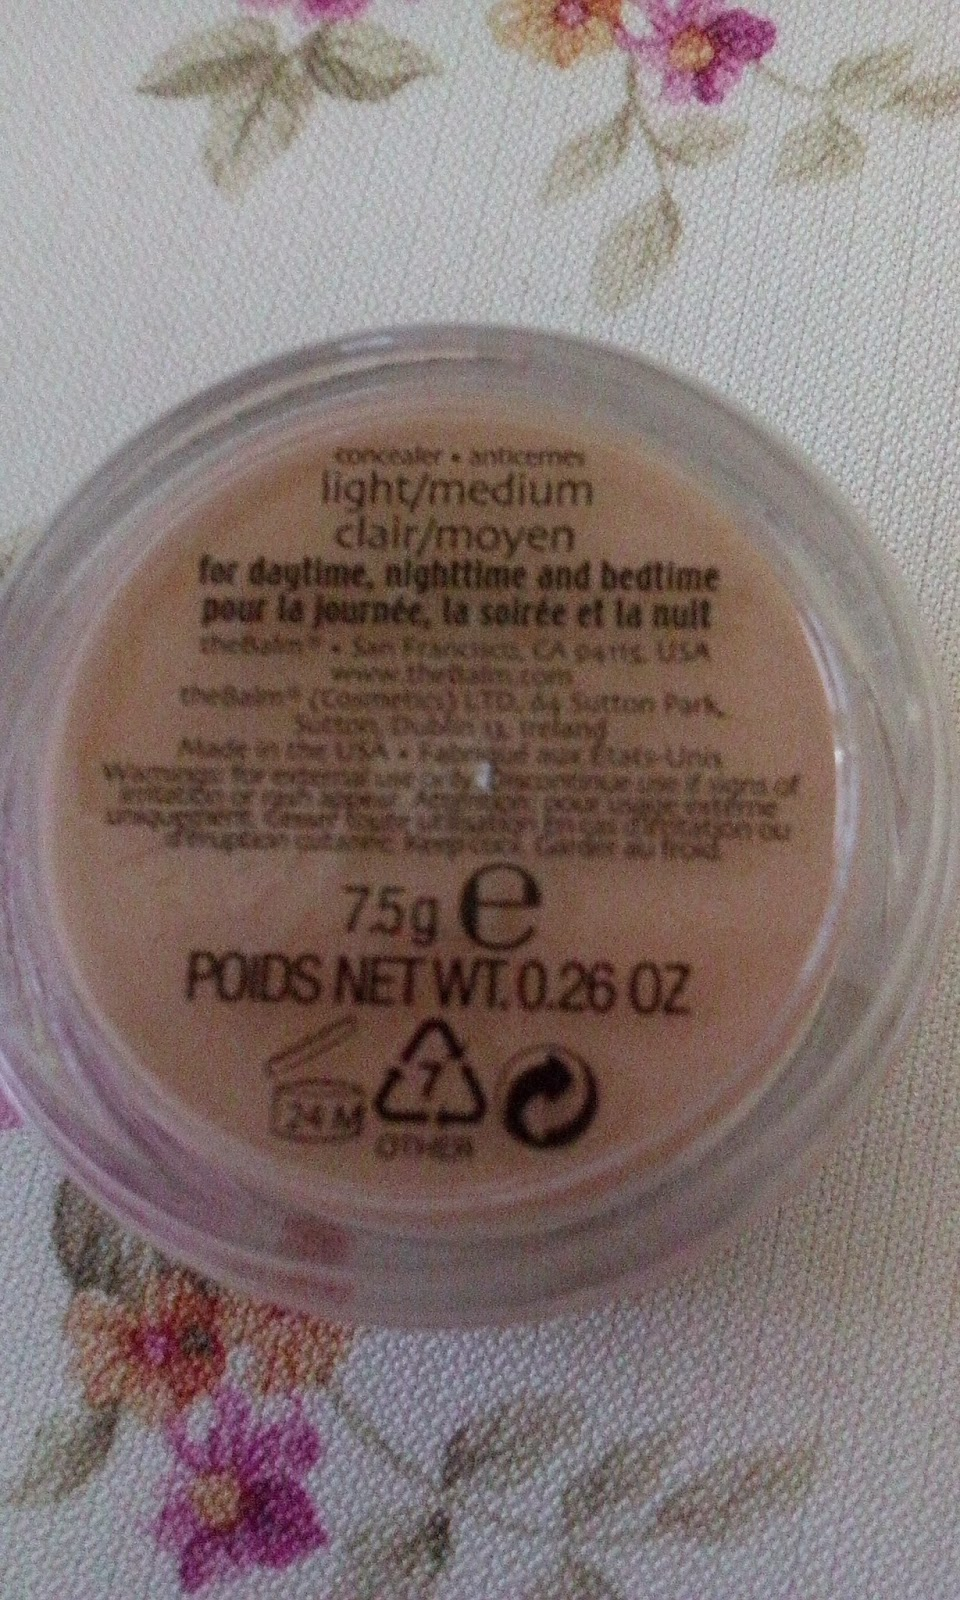 the balm concealar light medium